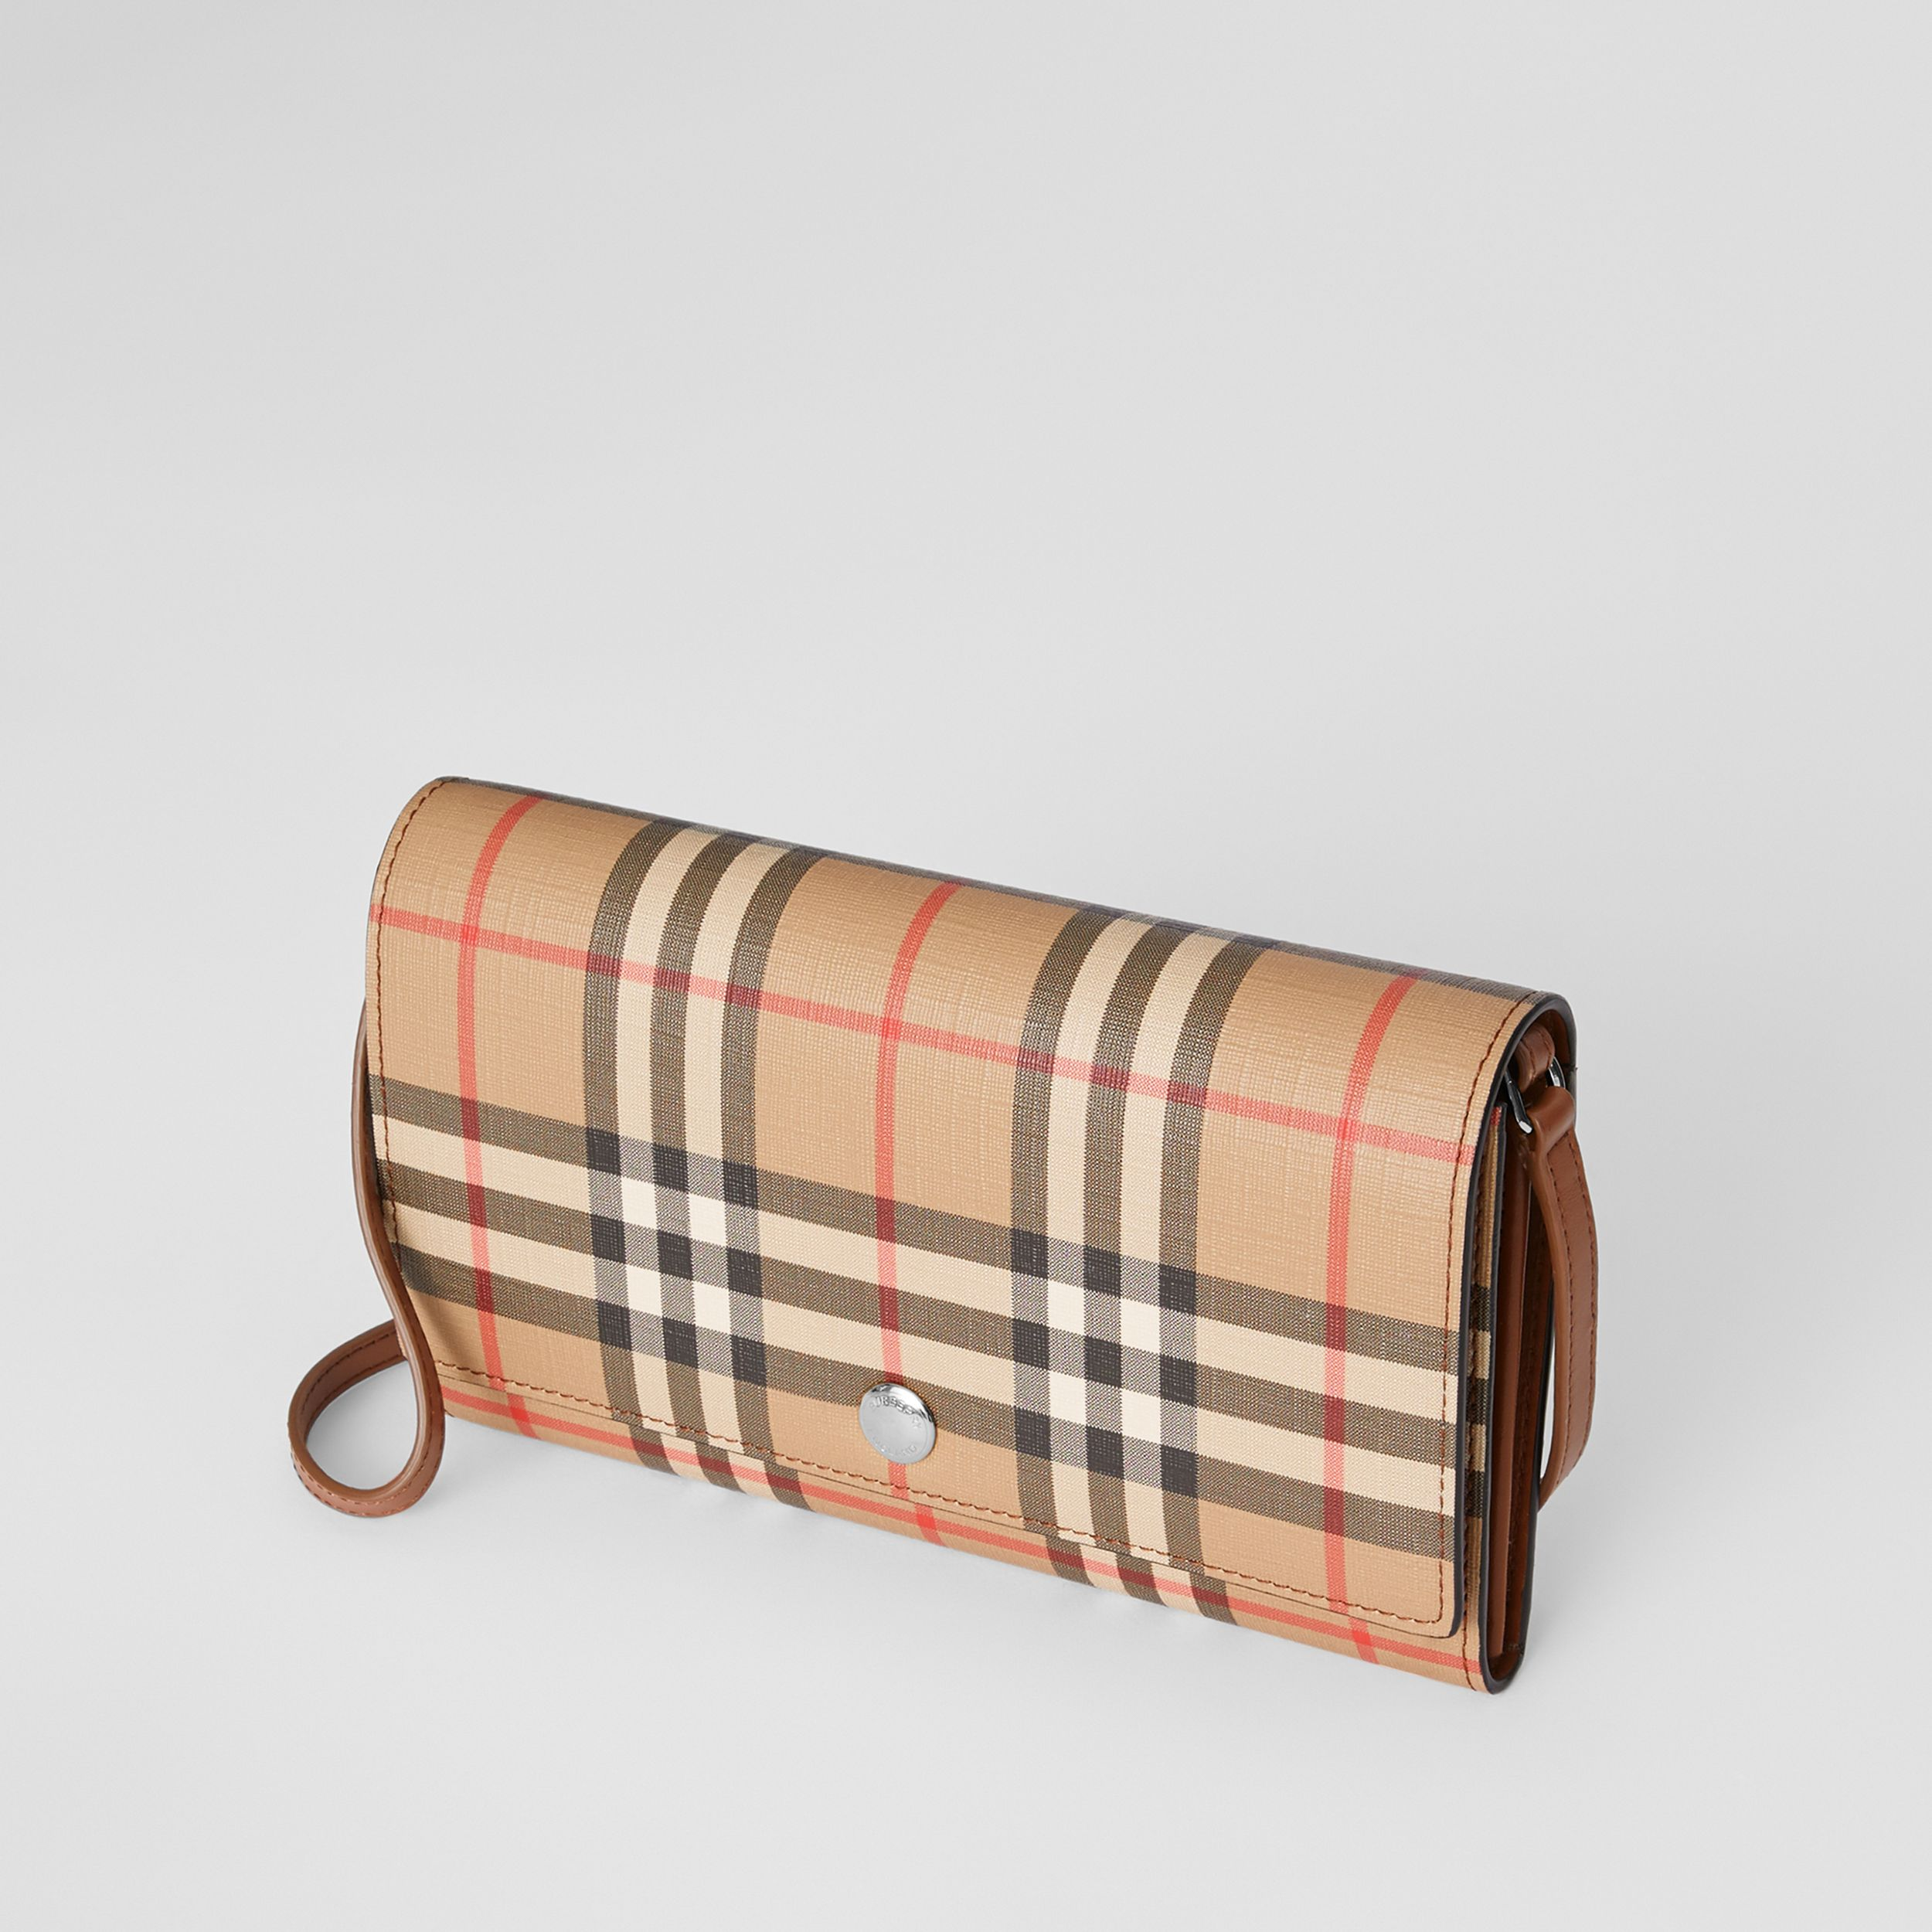 Vintage Check E-canvas Wallet with Detachable Strap in Malt Brown - Women | Burberry - 4